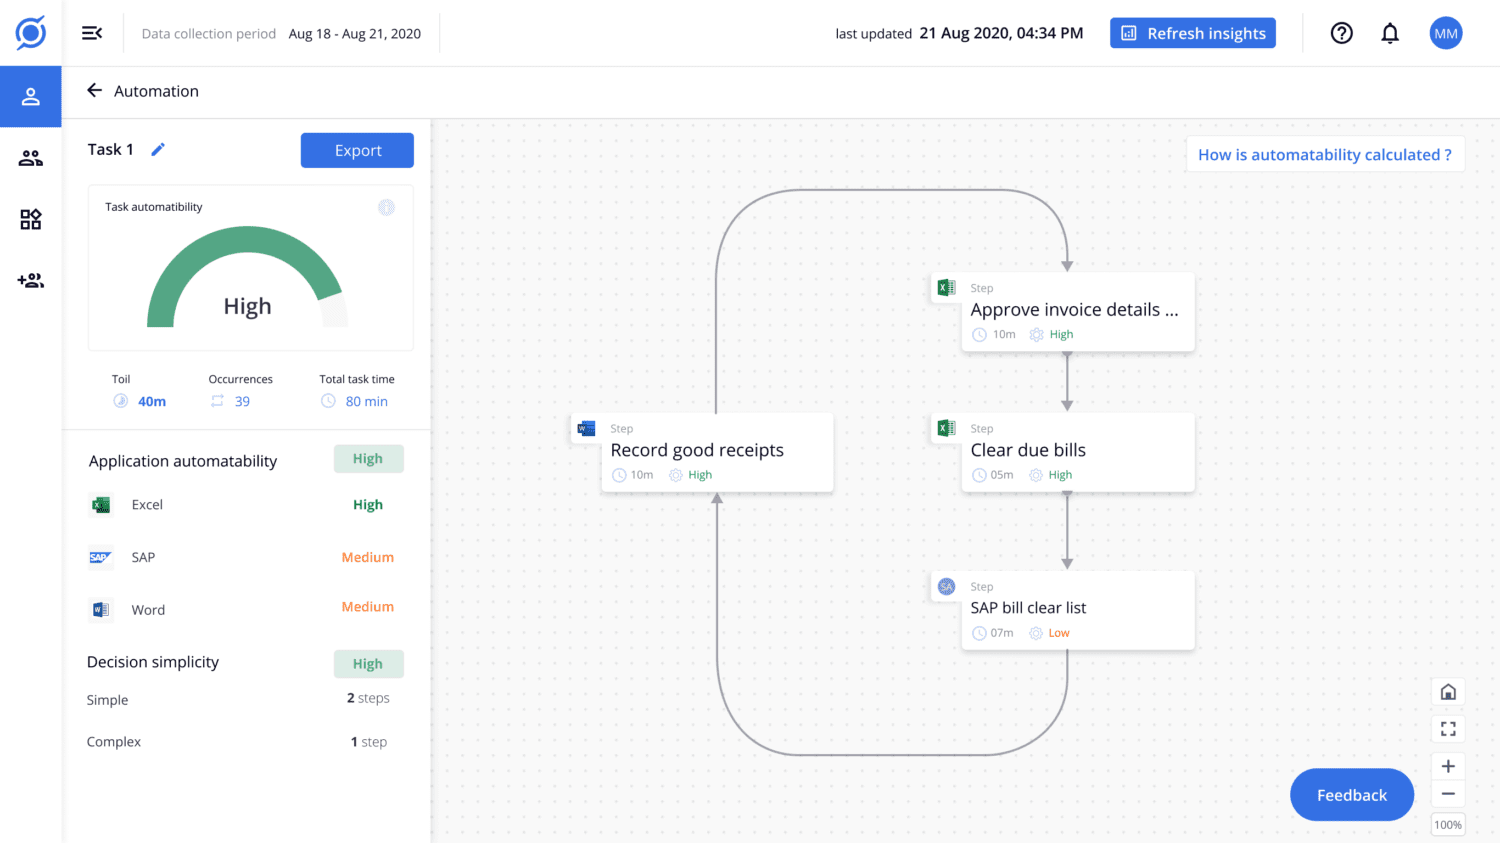 Scout Go showing automatability of a task along with how automatable applications and decisions involved are